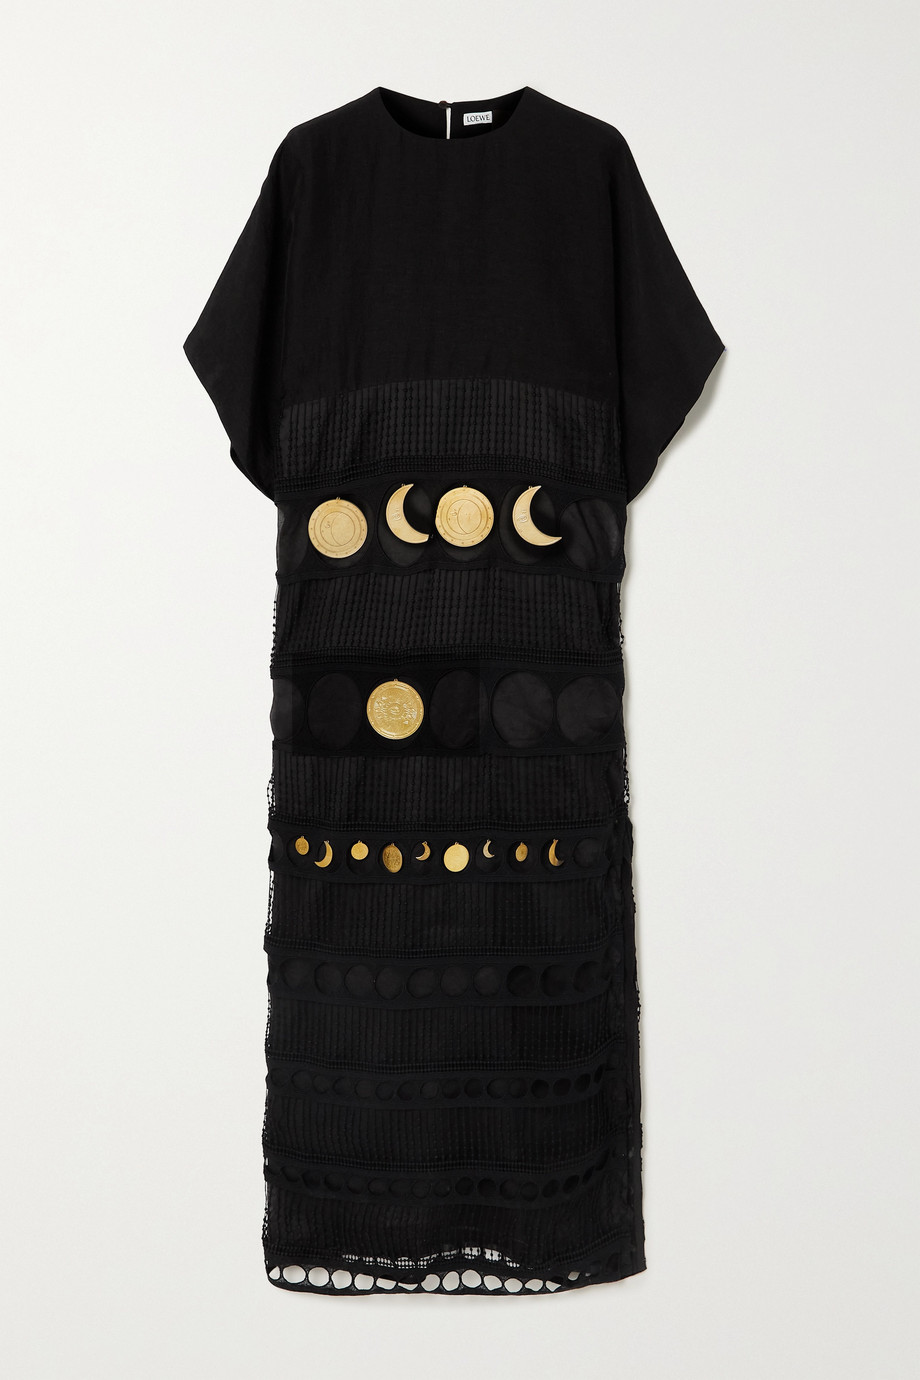 LOEWE + Paula's Ibiza embellished crocheted cotton and poplin dress